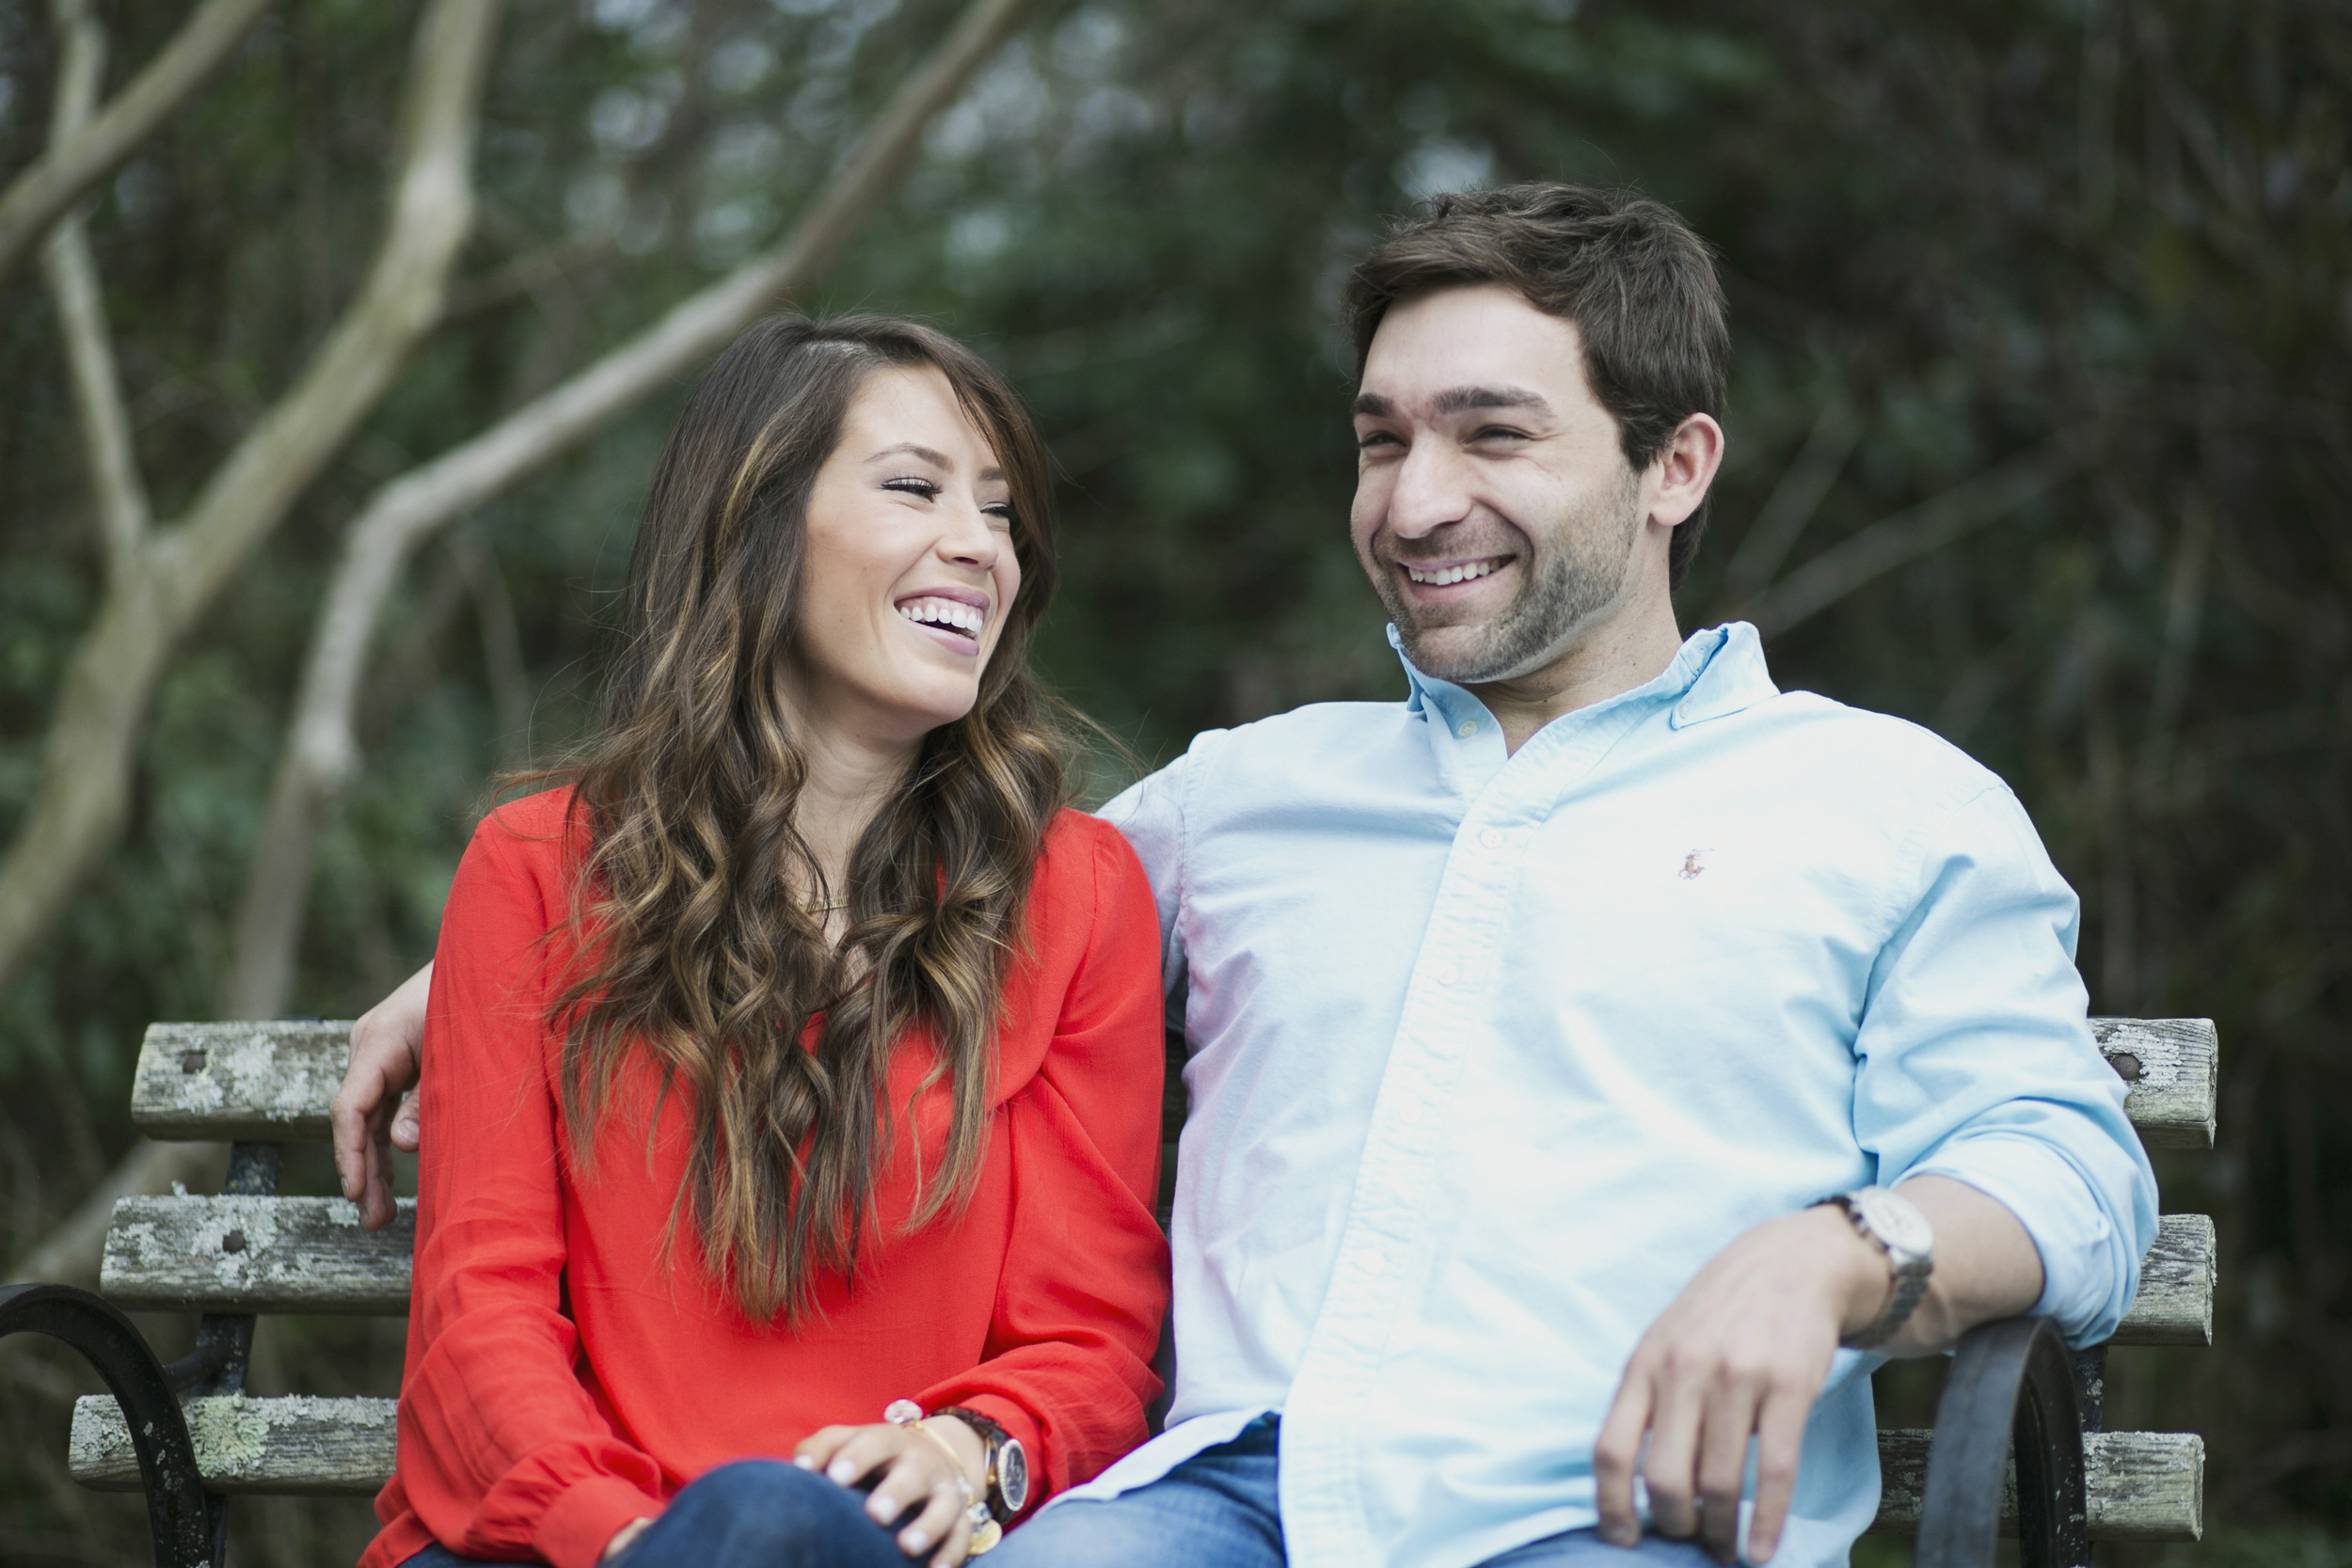 Jett Walker Photography | Handley Breaux Designs | Engagement Session